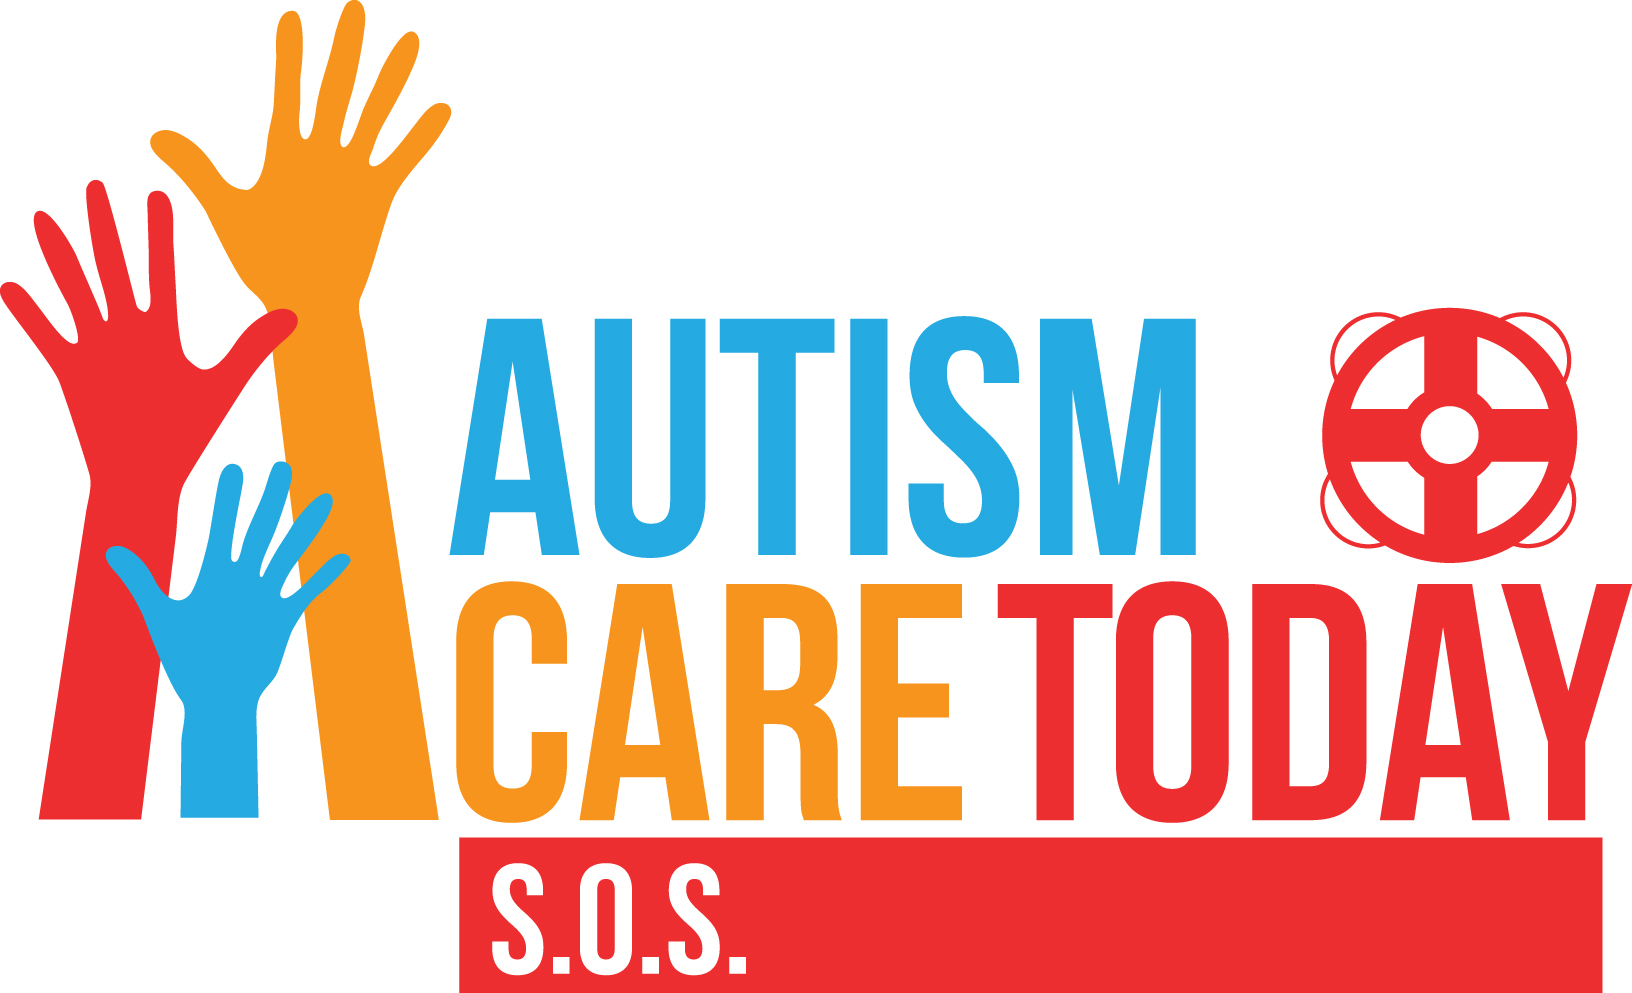 Autism Care Today S.O.S. Program